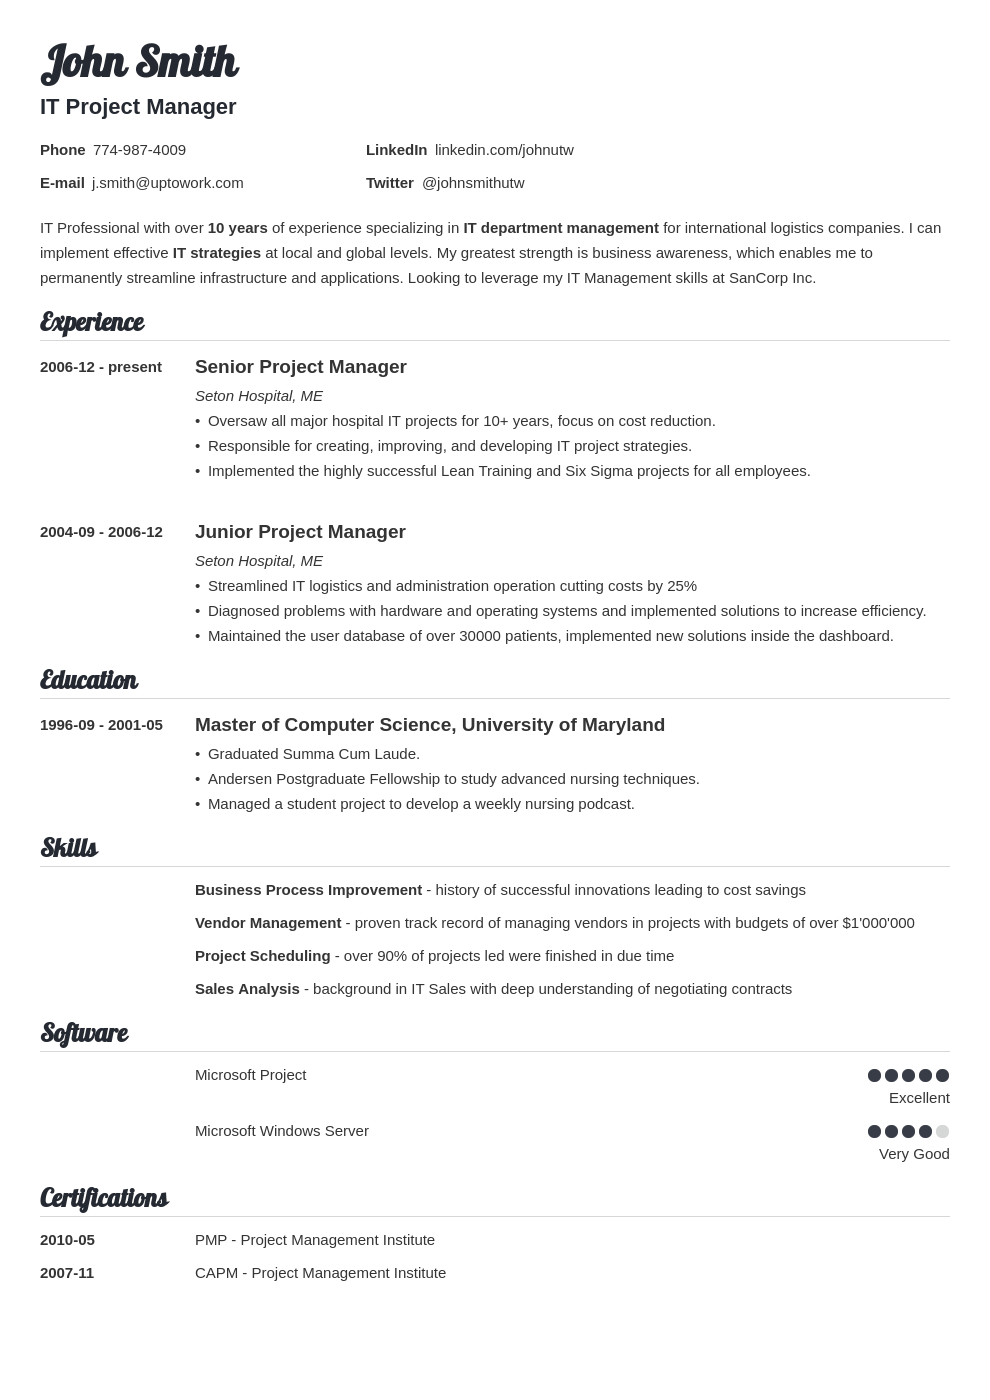 professional resume template valera - Template For A Resume